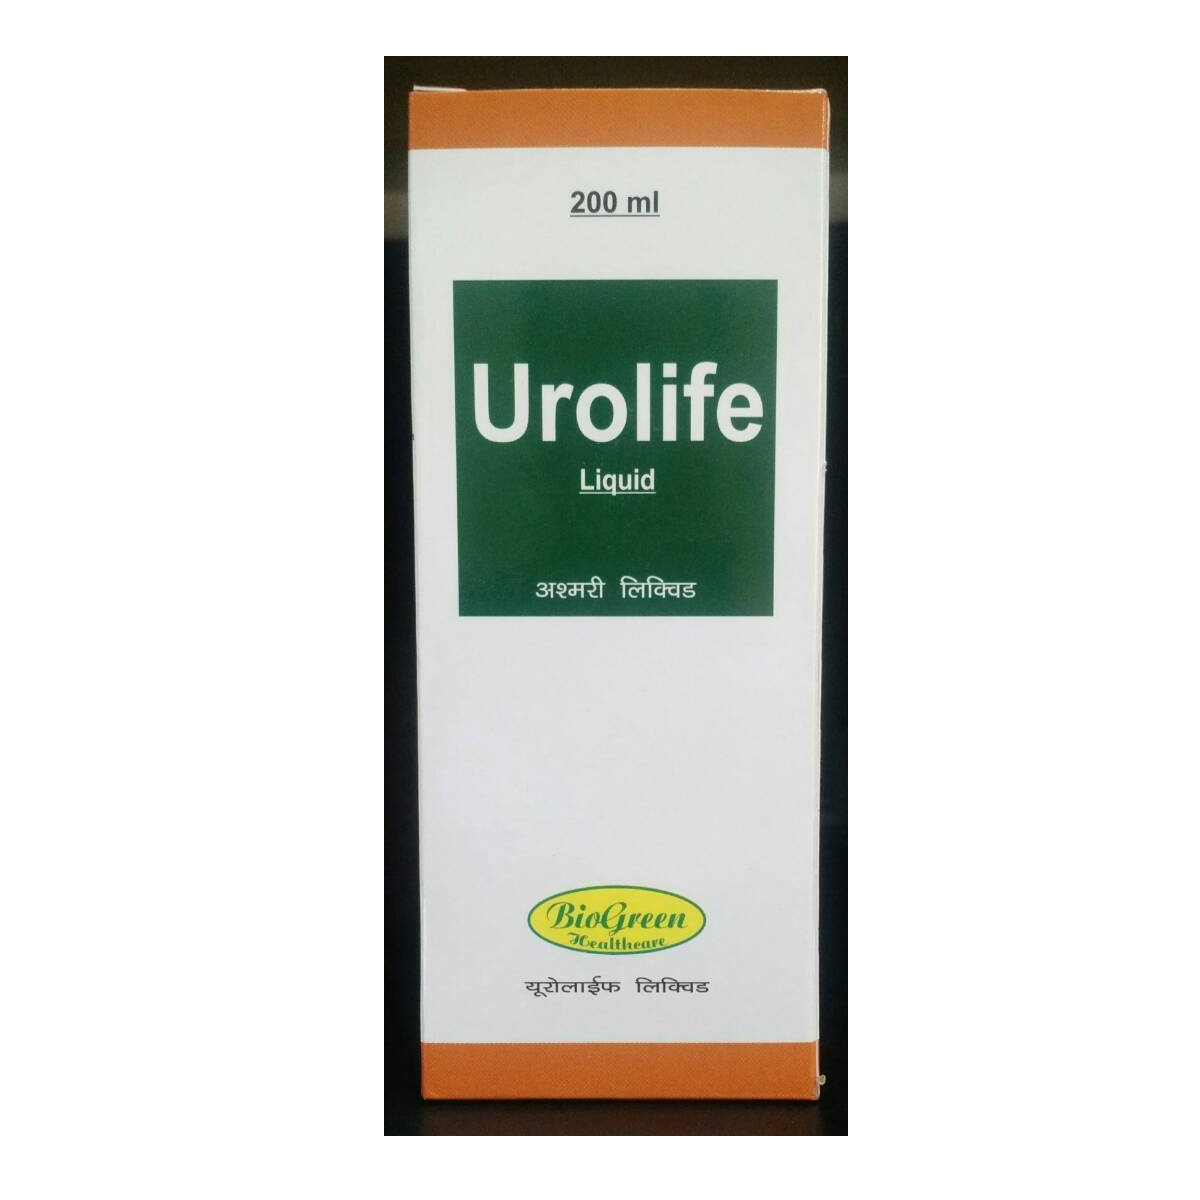 Urolife Liquid In Farrukhabad